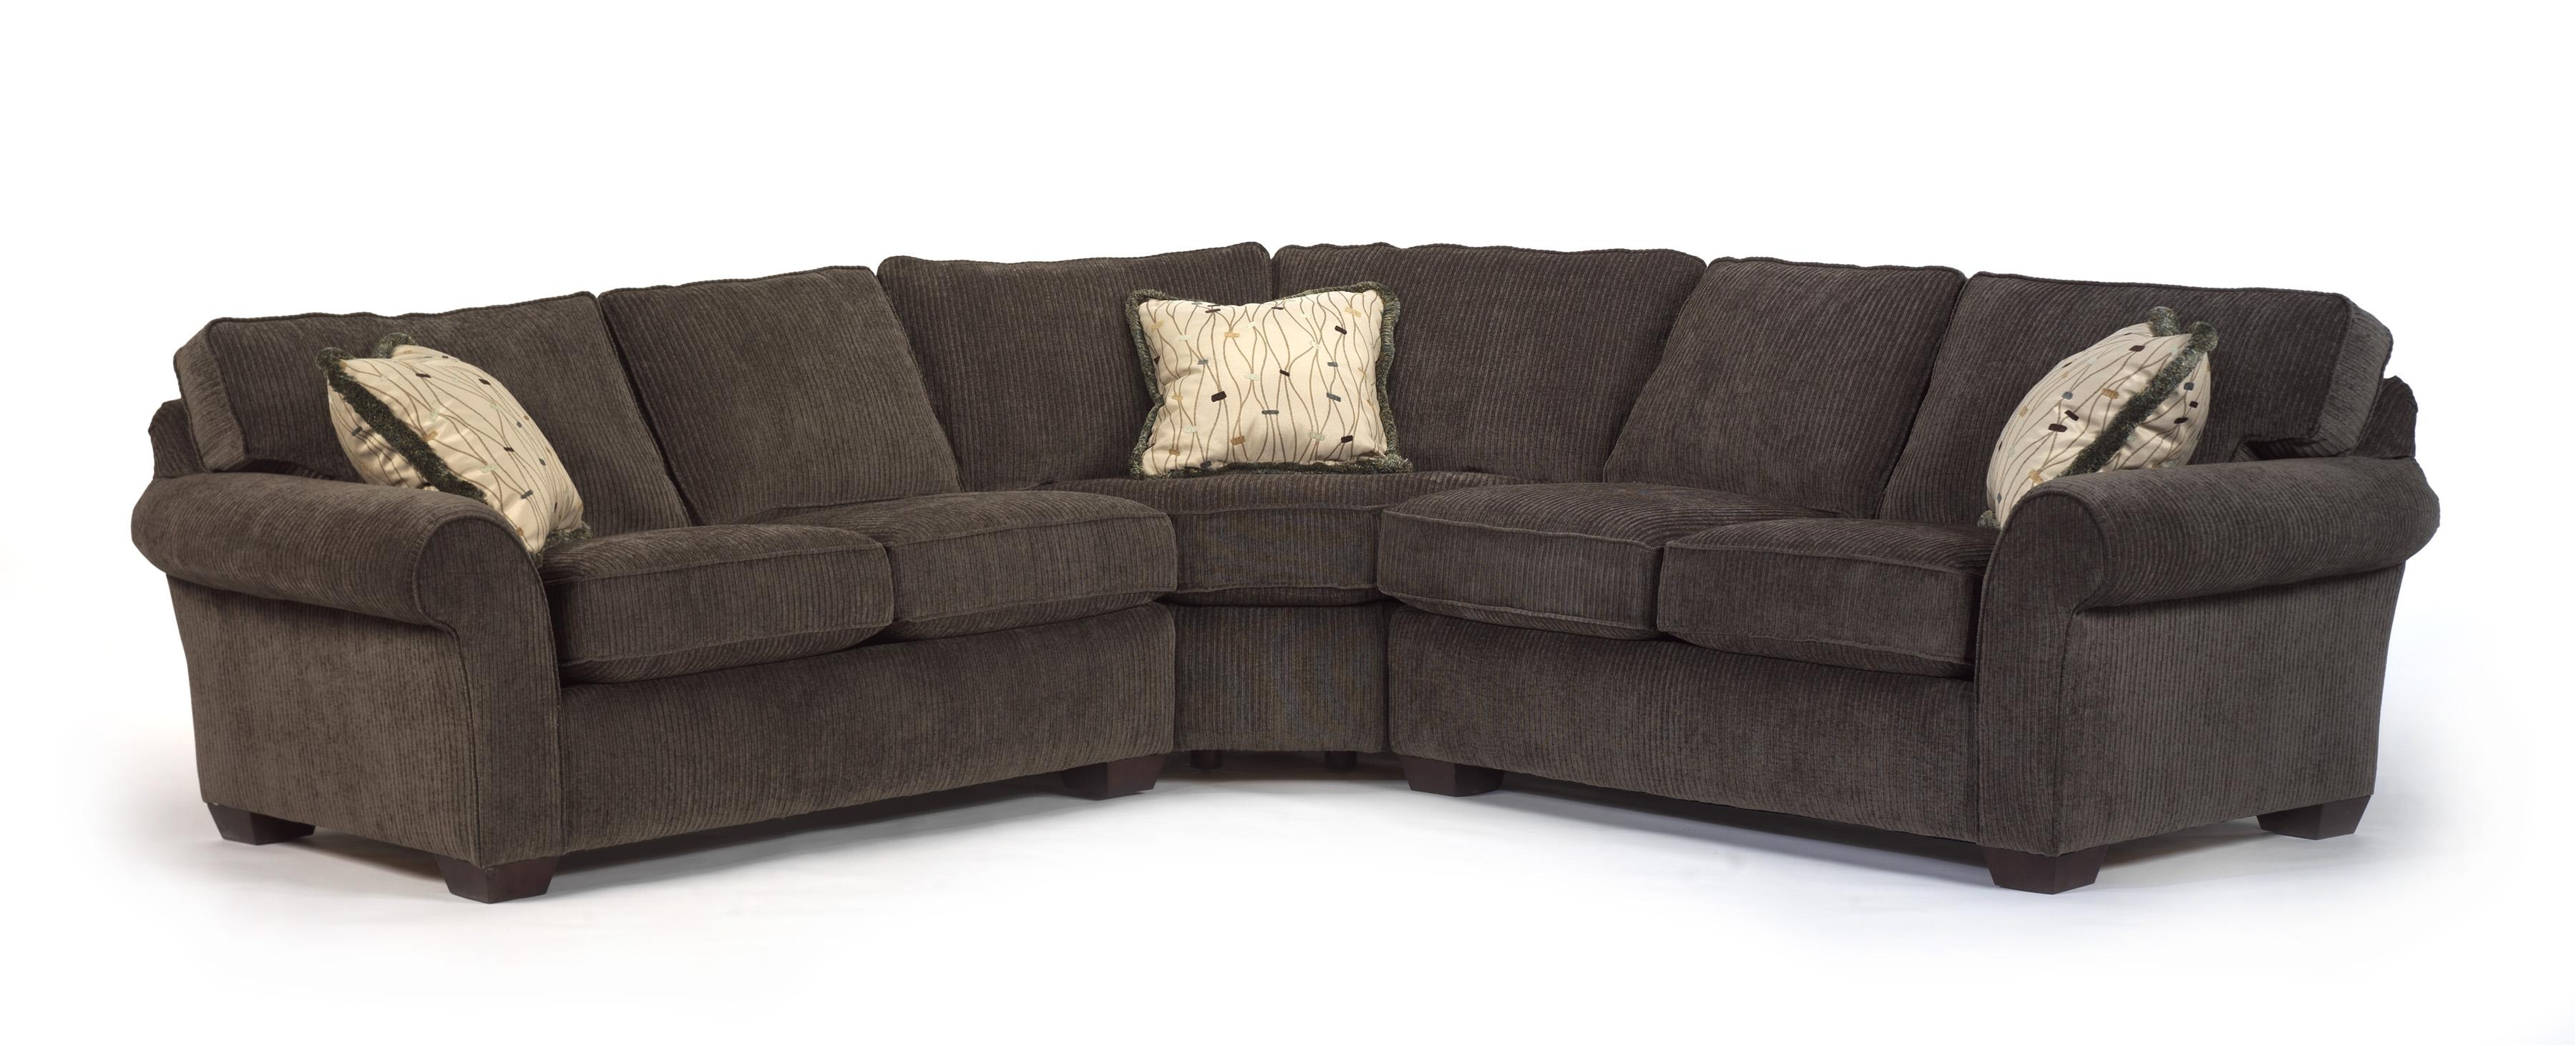 Plymouth Furniture Clearance Flexsteel Vail Corner Sectional Sofa Boulevard Home